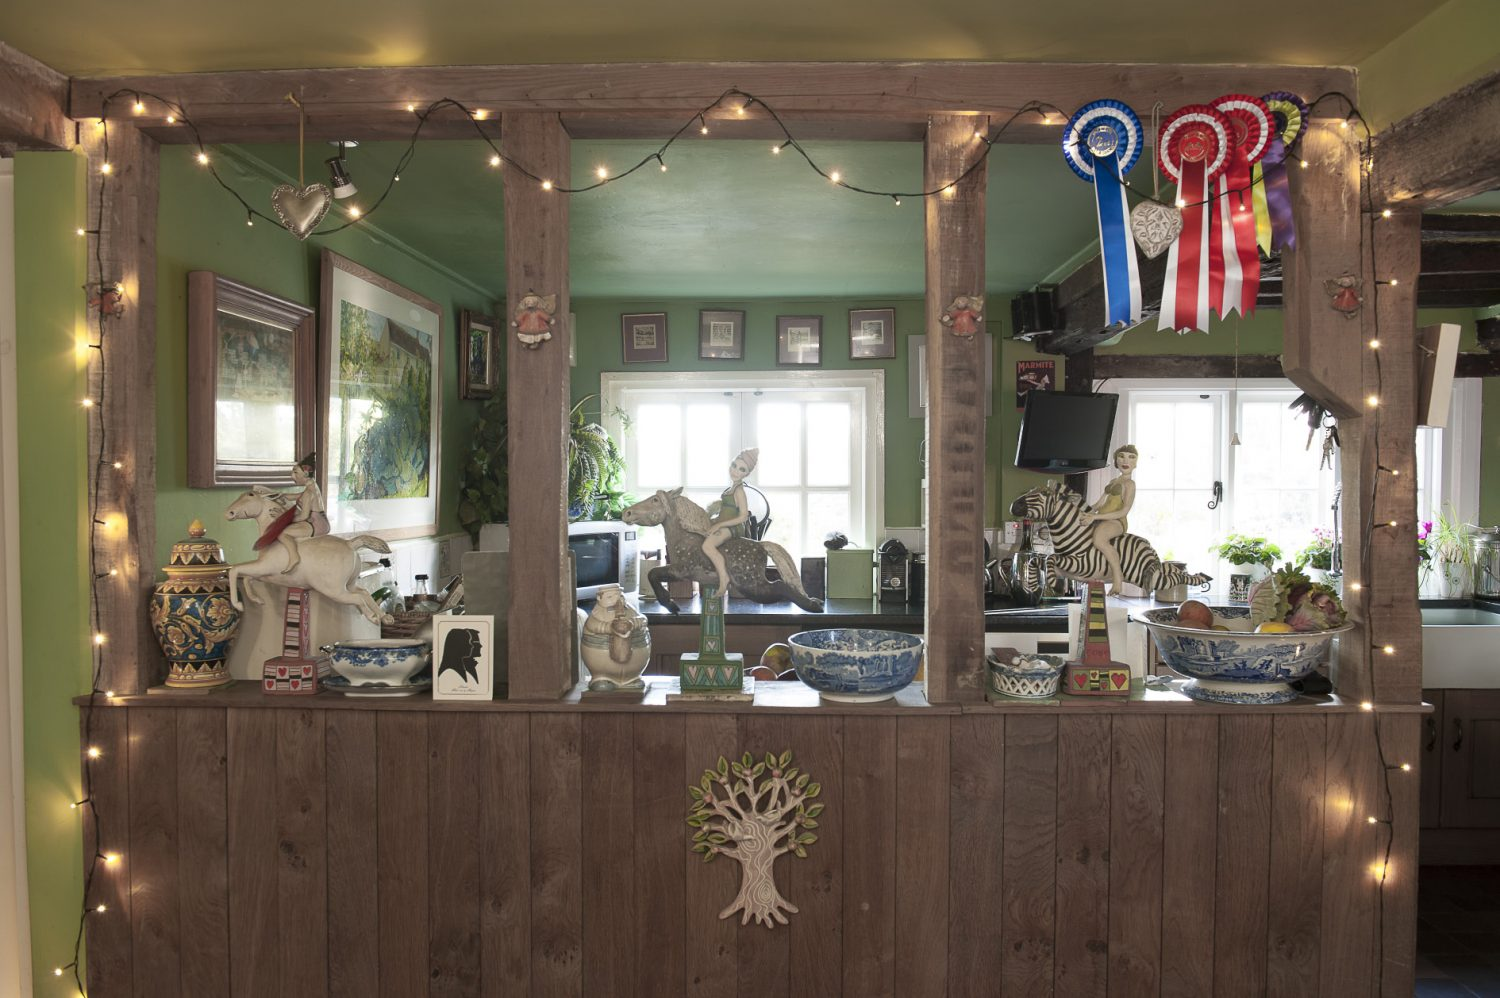 The ladies riding horses and a zebra are by Cranbrook ceramic artist Marie Prett